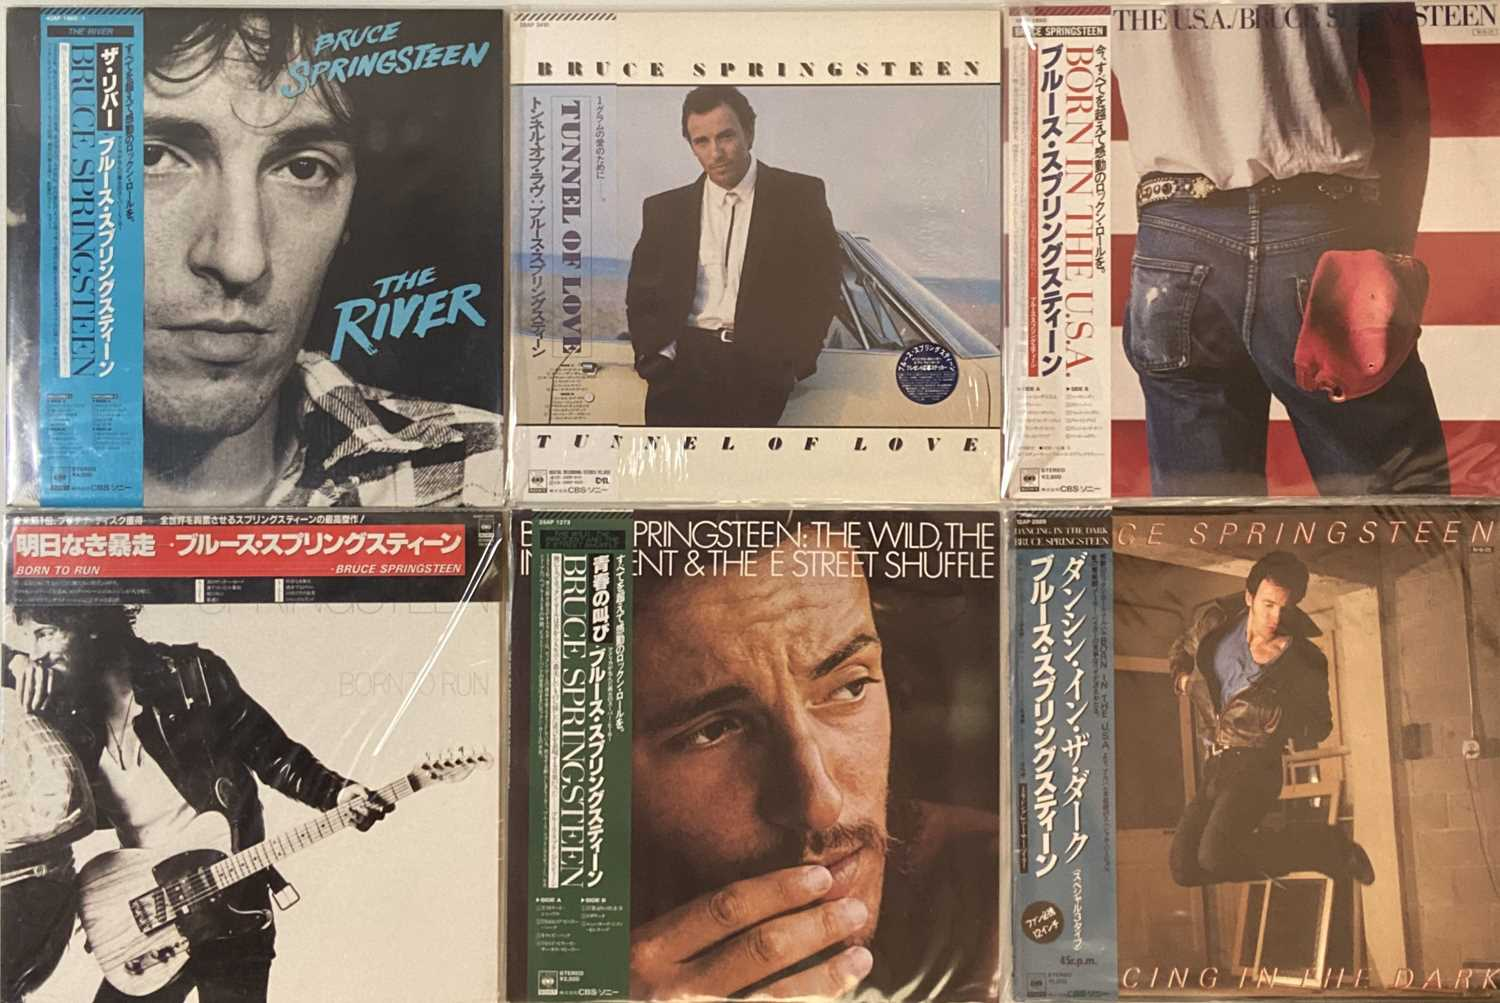 Lot 43 - BRUCE SPRINGSTEEN - JAPANESE LPs